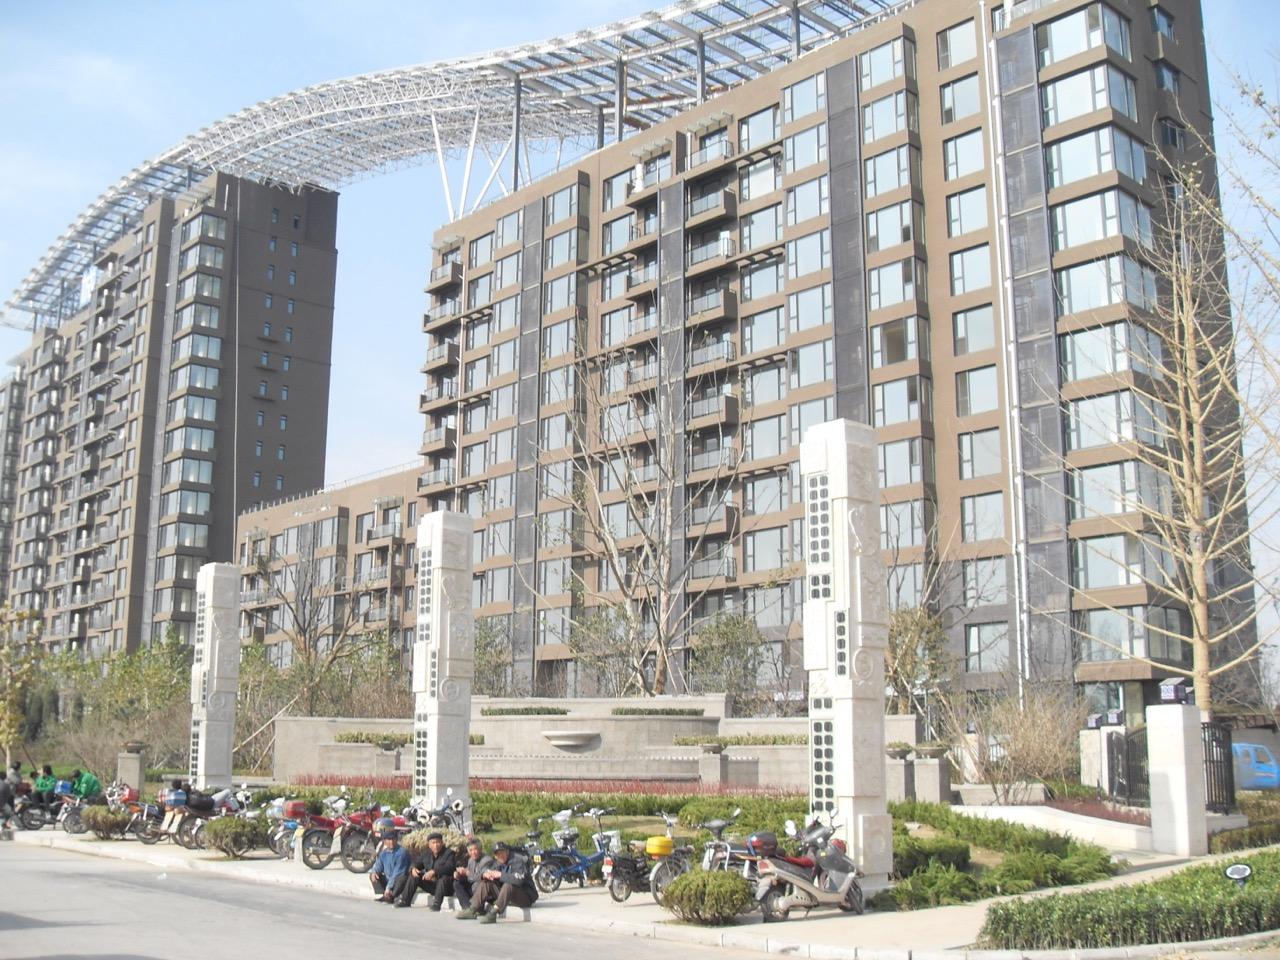 Solar panels on apartment building in Dezhou, Shandong province, China